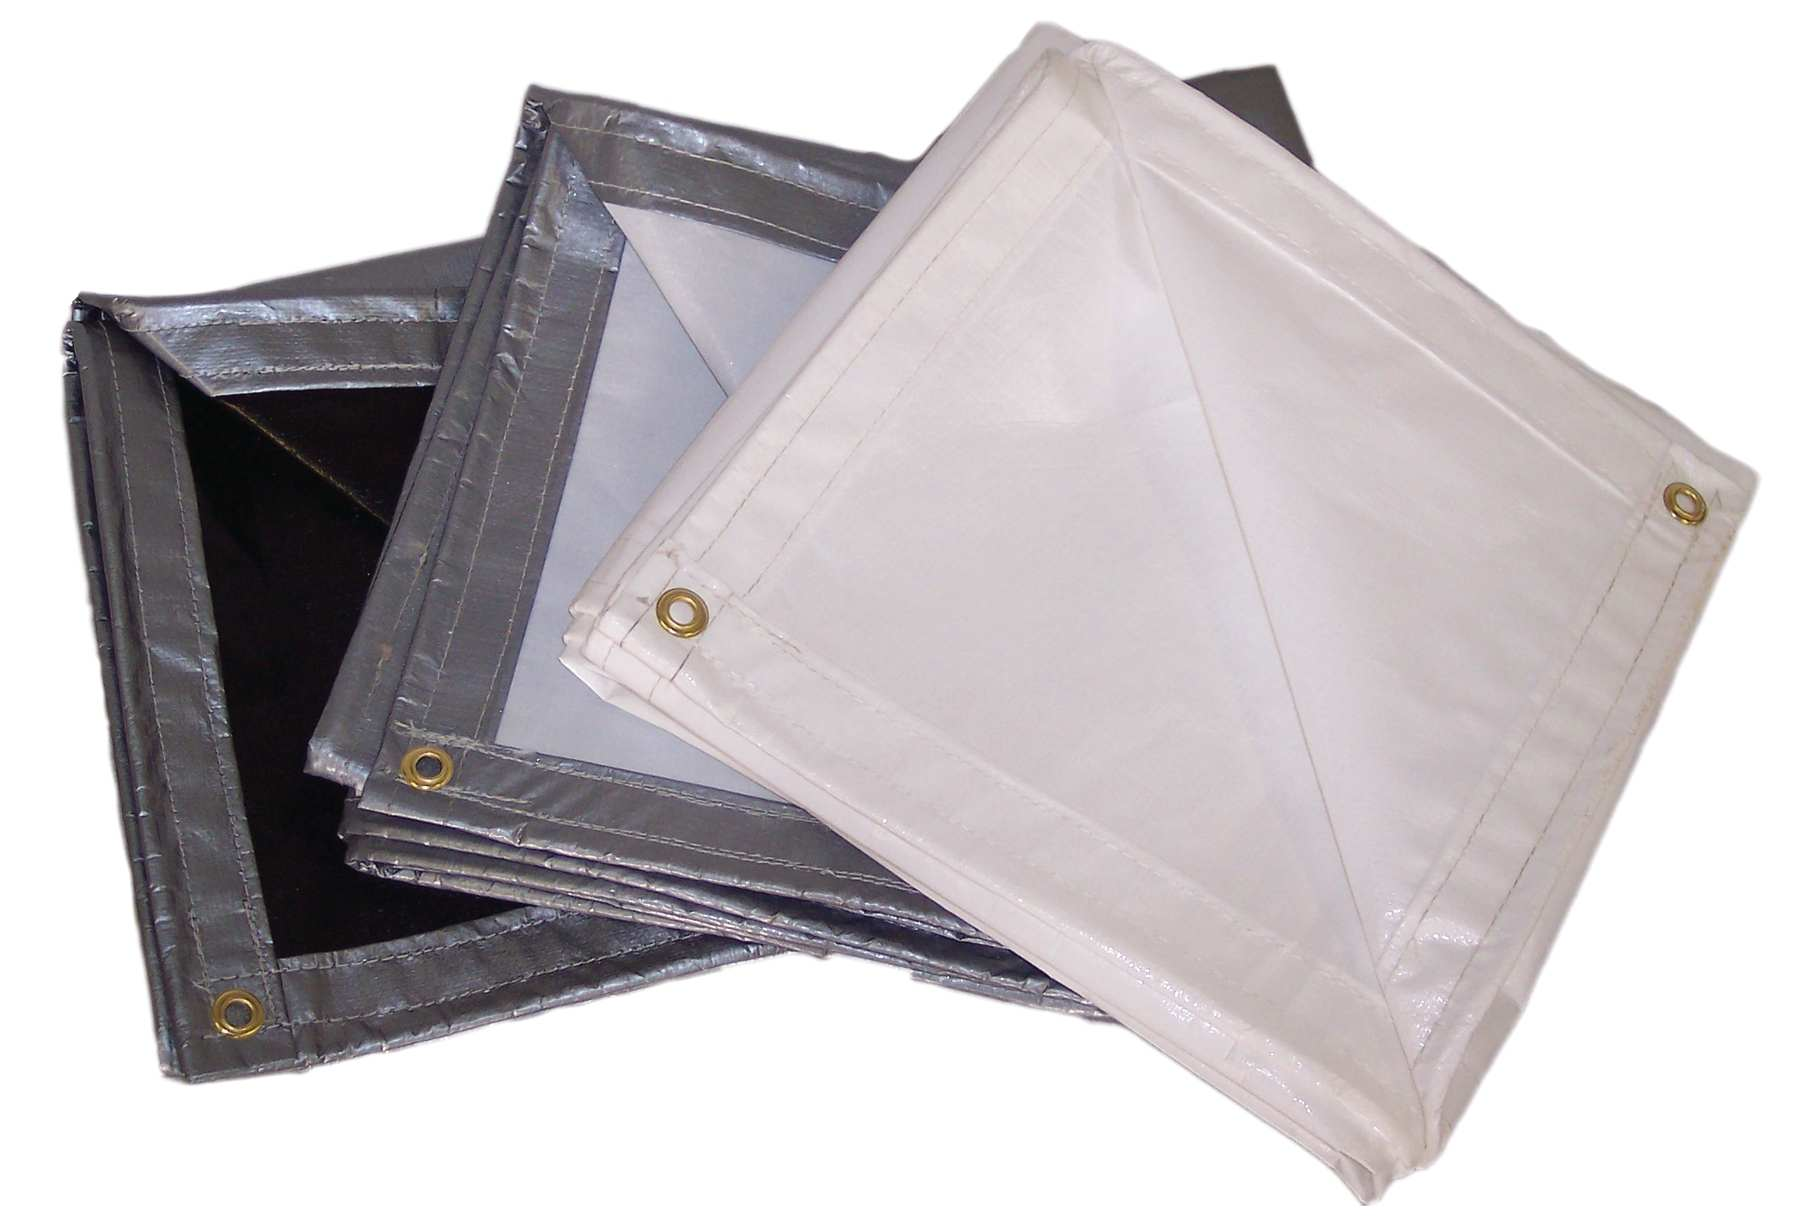 Heavy Duty Reinforced Polyethylene Tarps – 12 mil., 7 oz./sq. Yd.; Size (ft.) 6 x 8